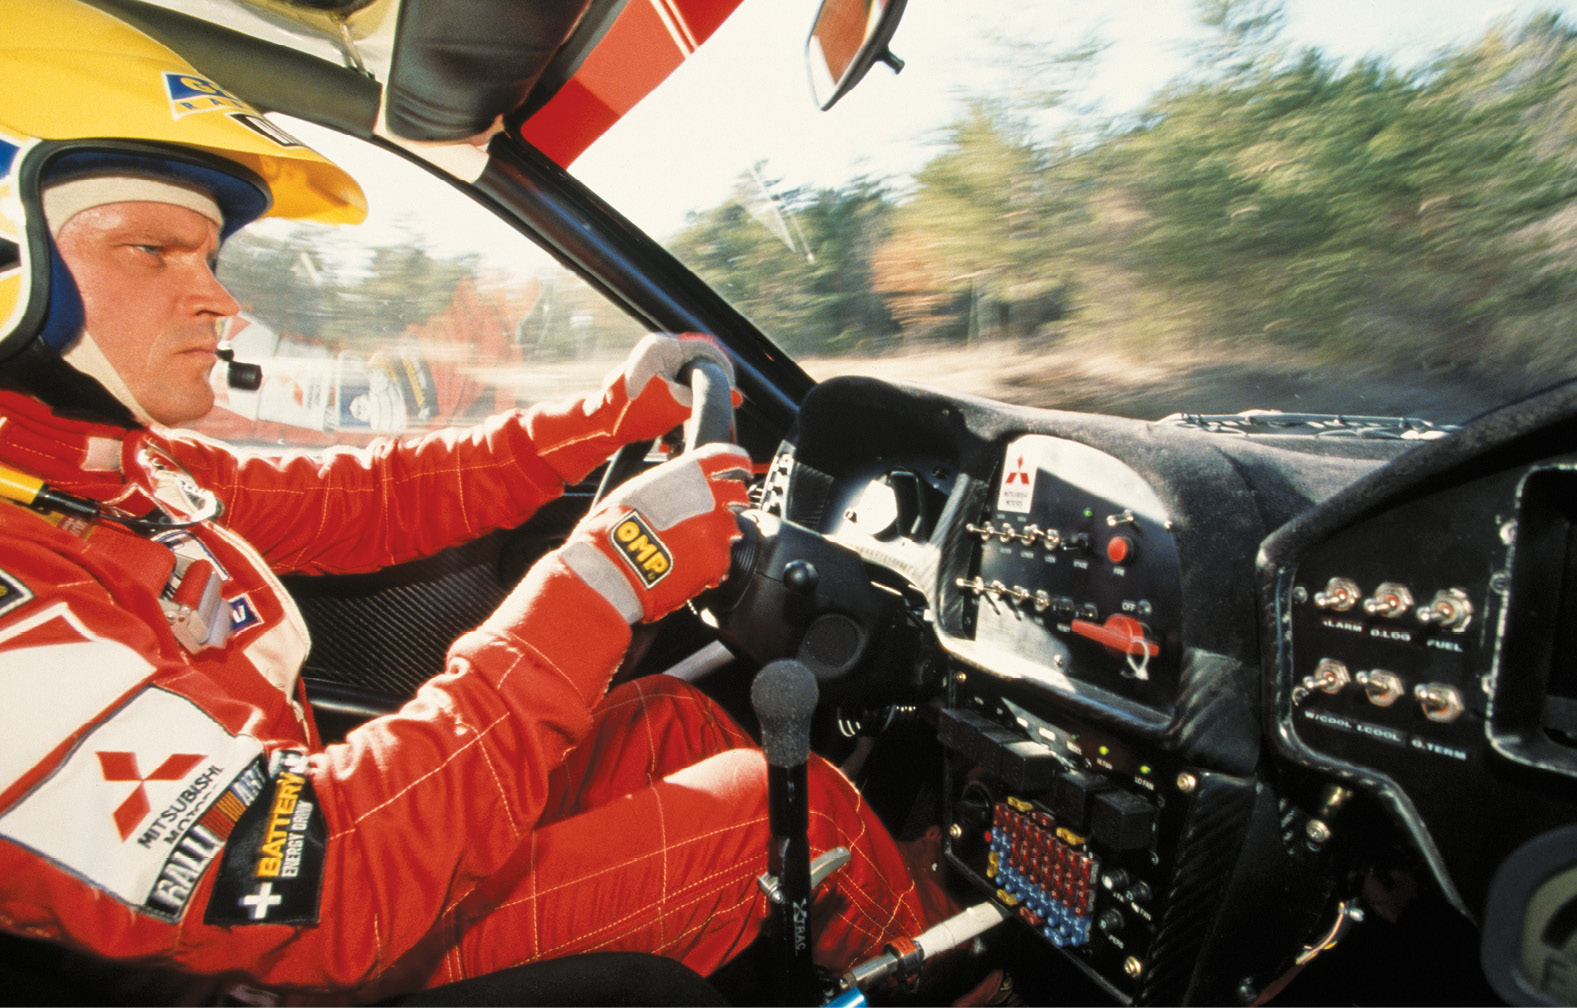 Mäkinen became synonymous with variations of the Mitsubishi Lancer Evo – but it was not love at first sight